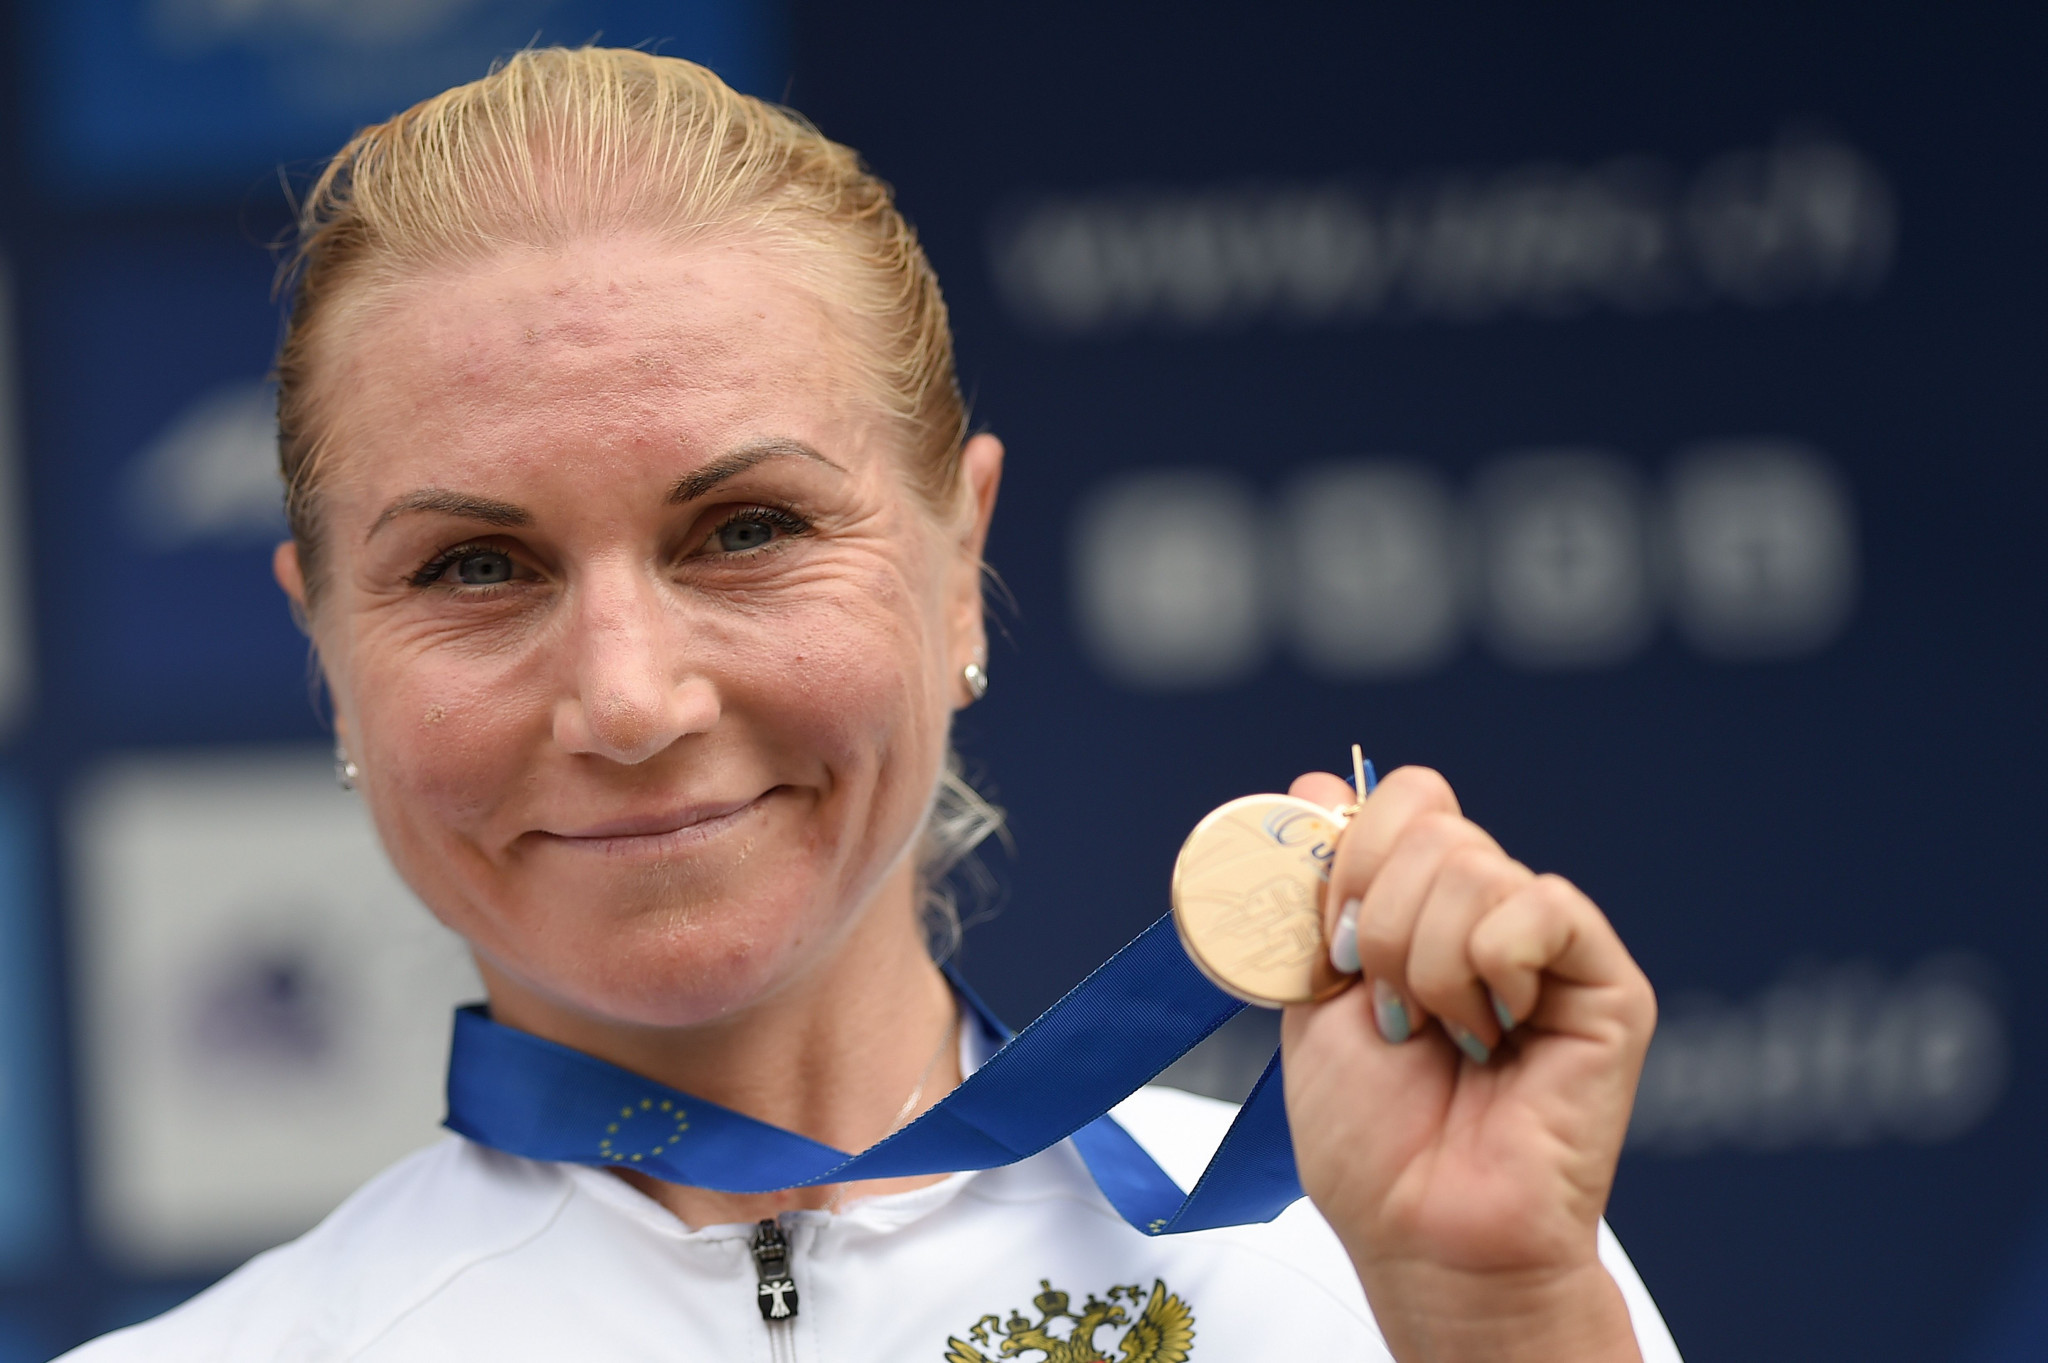 Russian cyclist Olga Zabelinskaya has been deemed ineligible to compete here at the 2018 Asian Games after official letters approving and confirming her switch of nationality to Uzbekistan were not provided ©Getty Images